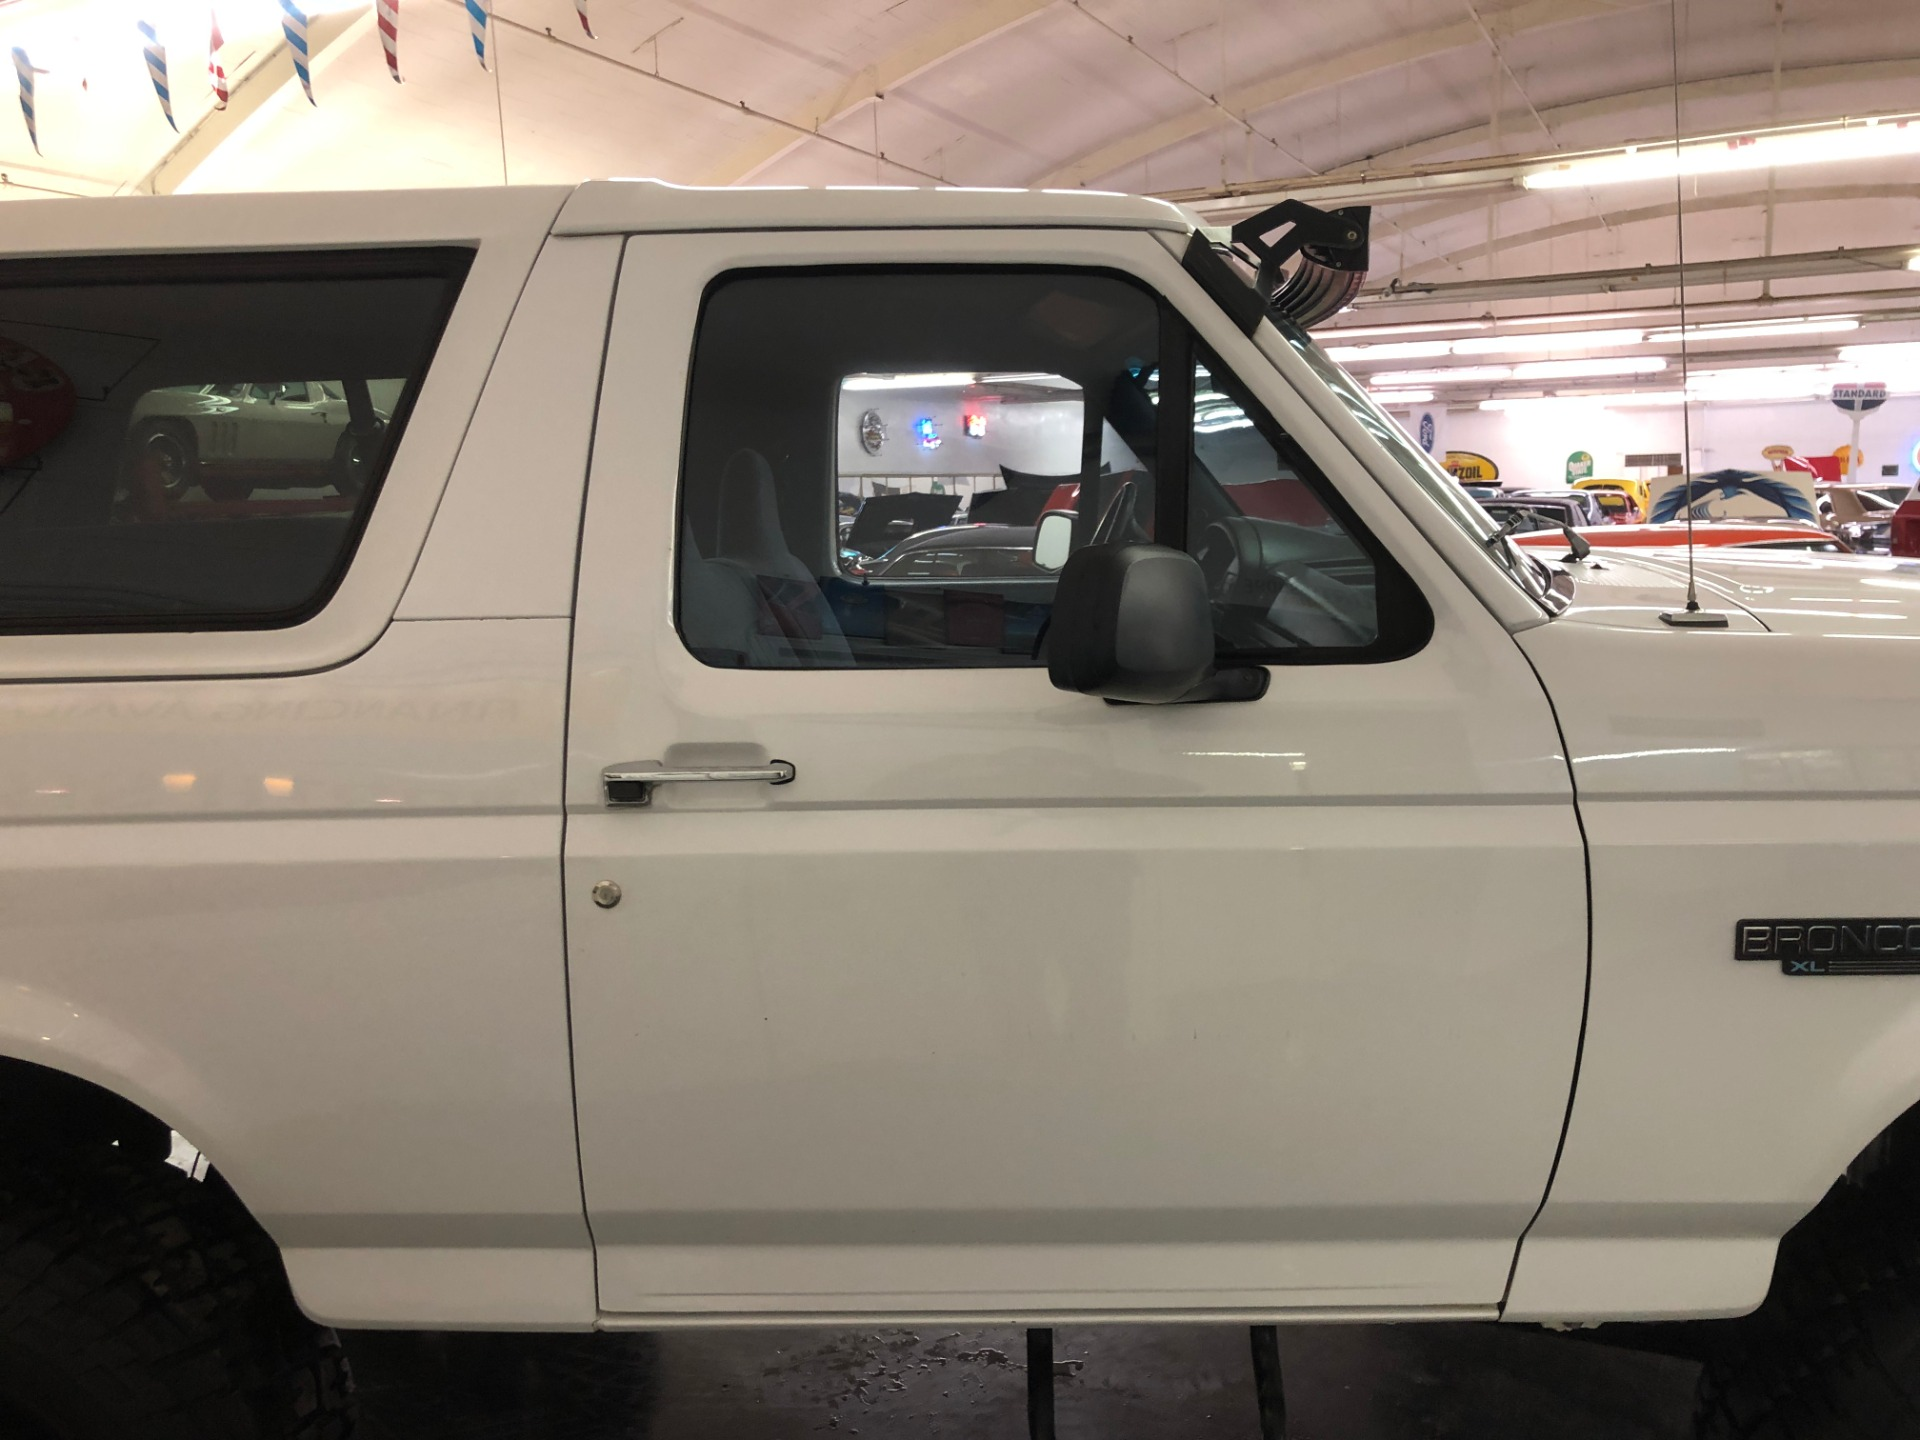 Used 1995 Ford Bronco XL-CLEAN CALIFORNIA VEHICLE-FINANCING OK-CLEAN CARFAX- | Mundelein, IL